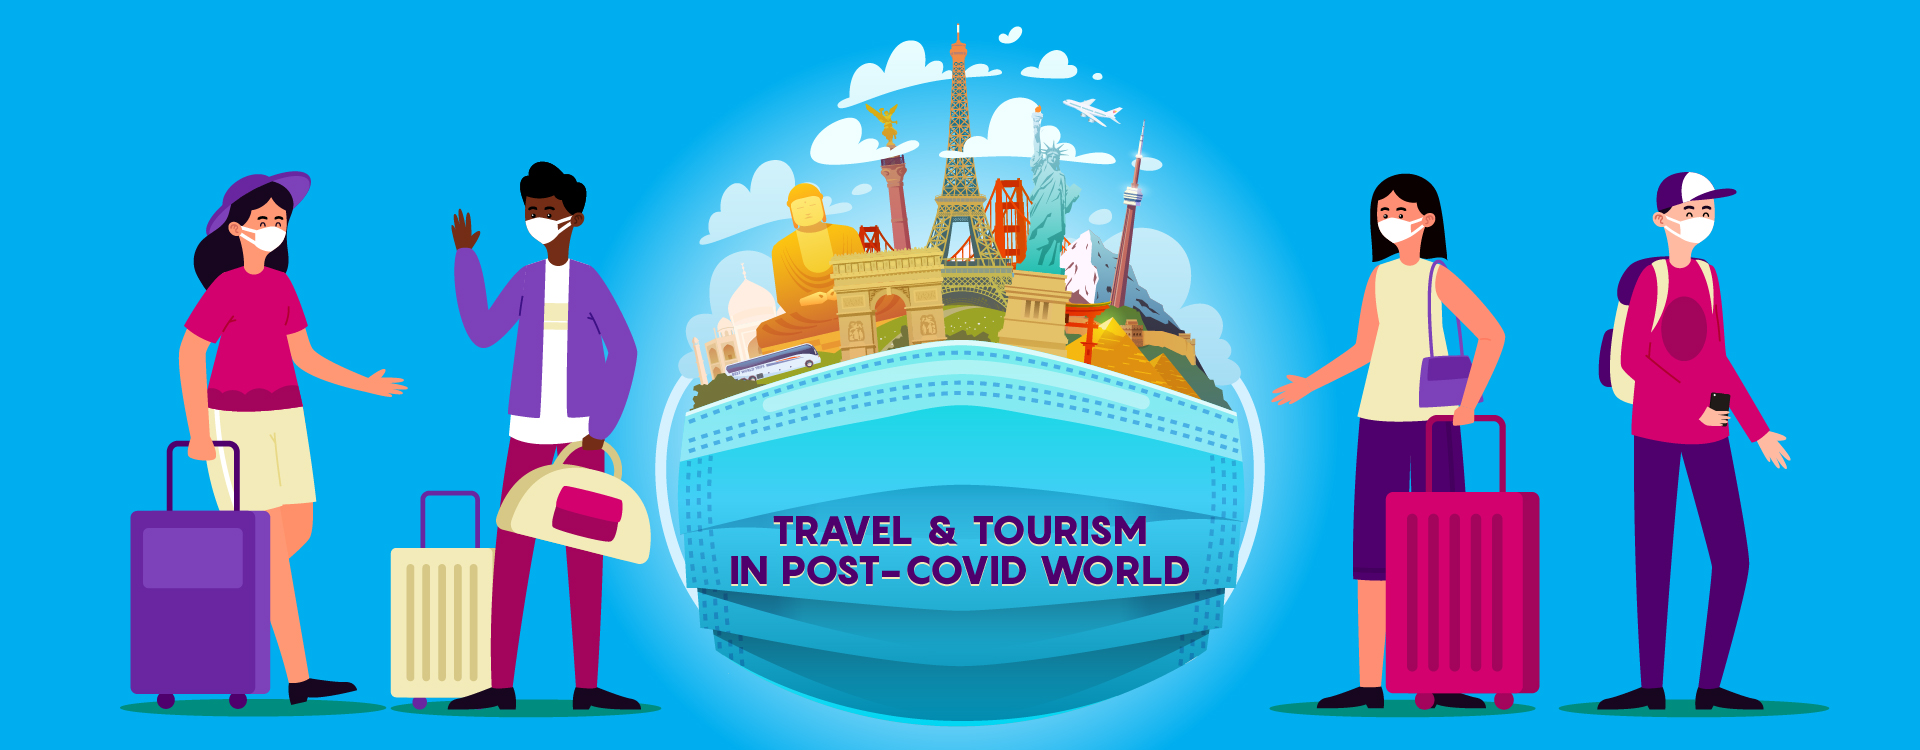 Travel Start-ups and Tourism Businesses Changing Travel Trends